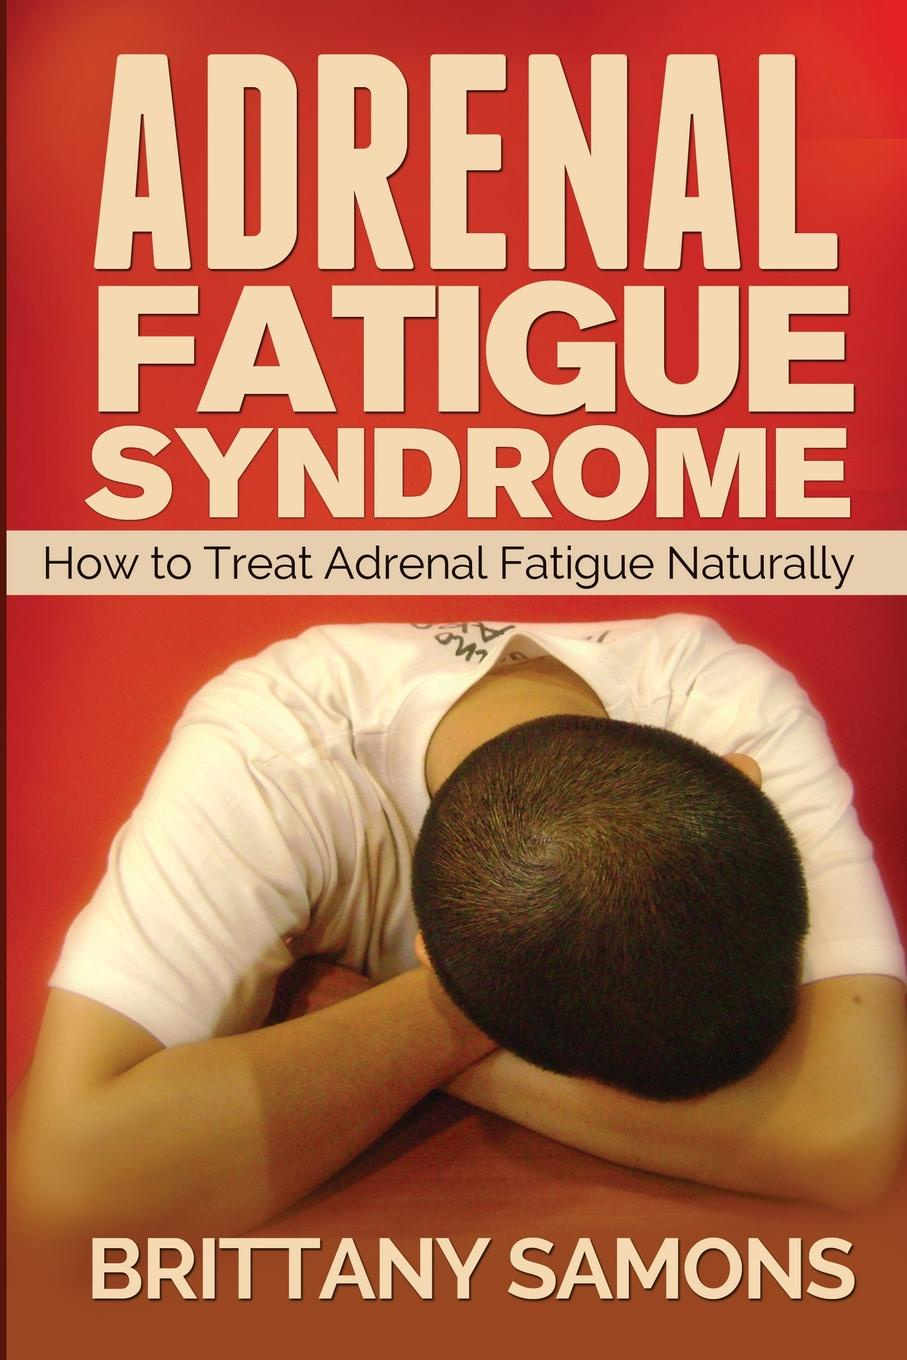 Samons Brittany, Brittany Samons Adrenal Fatigue Syndrome. How to Treat Adrenal Fatigue Naturally 5 bottles tien cordyceps enhanced immunity anti fatigue production in may 2016